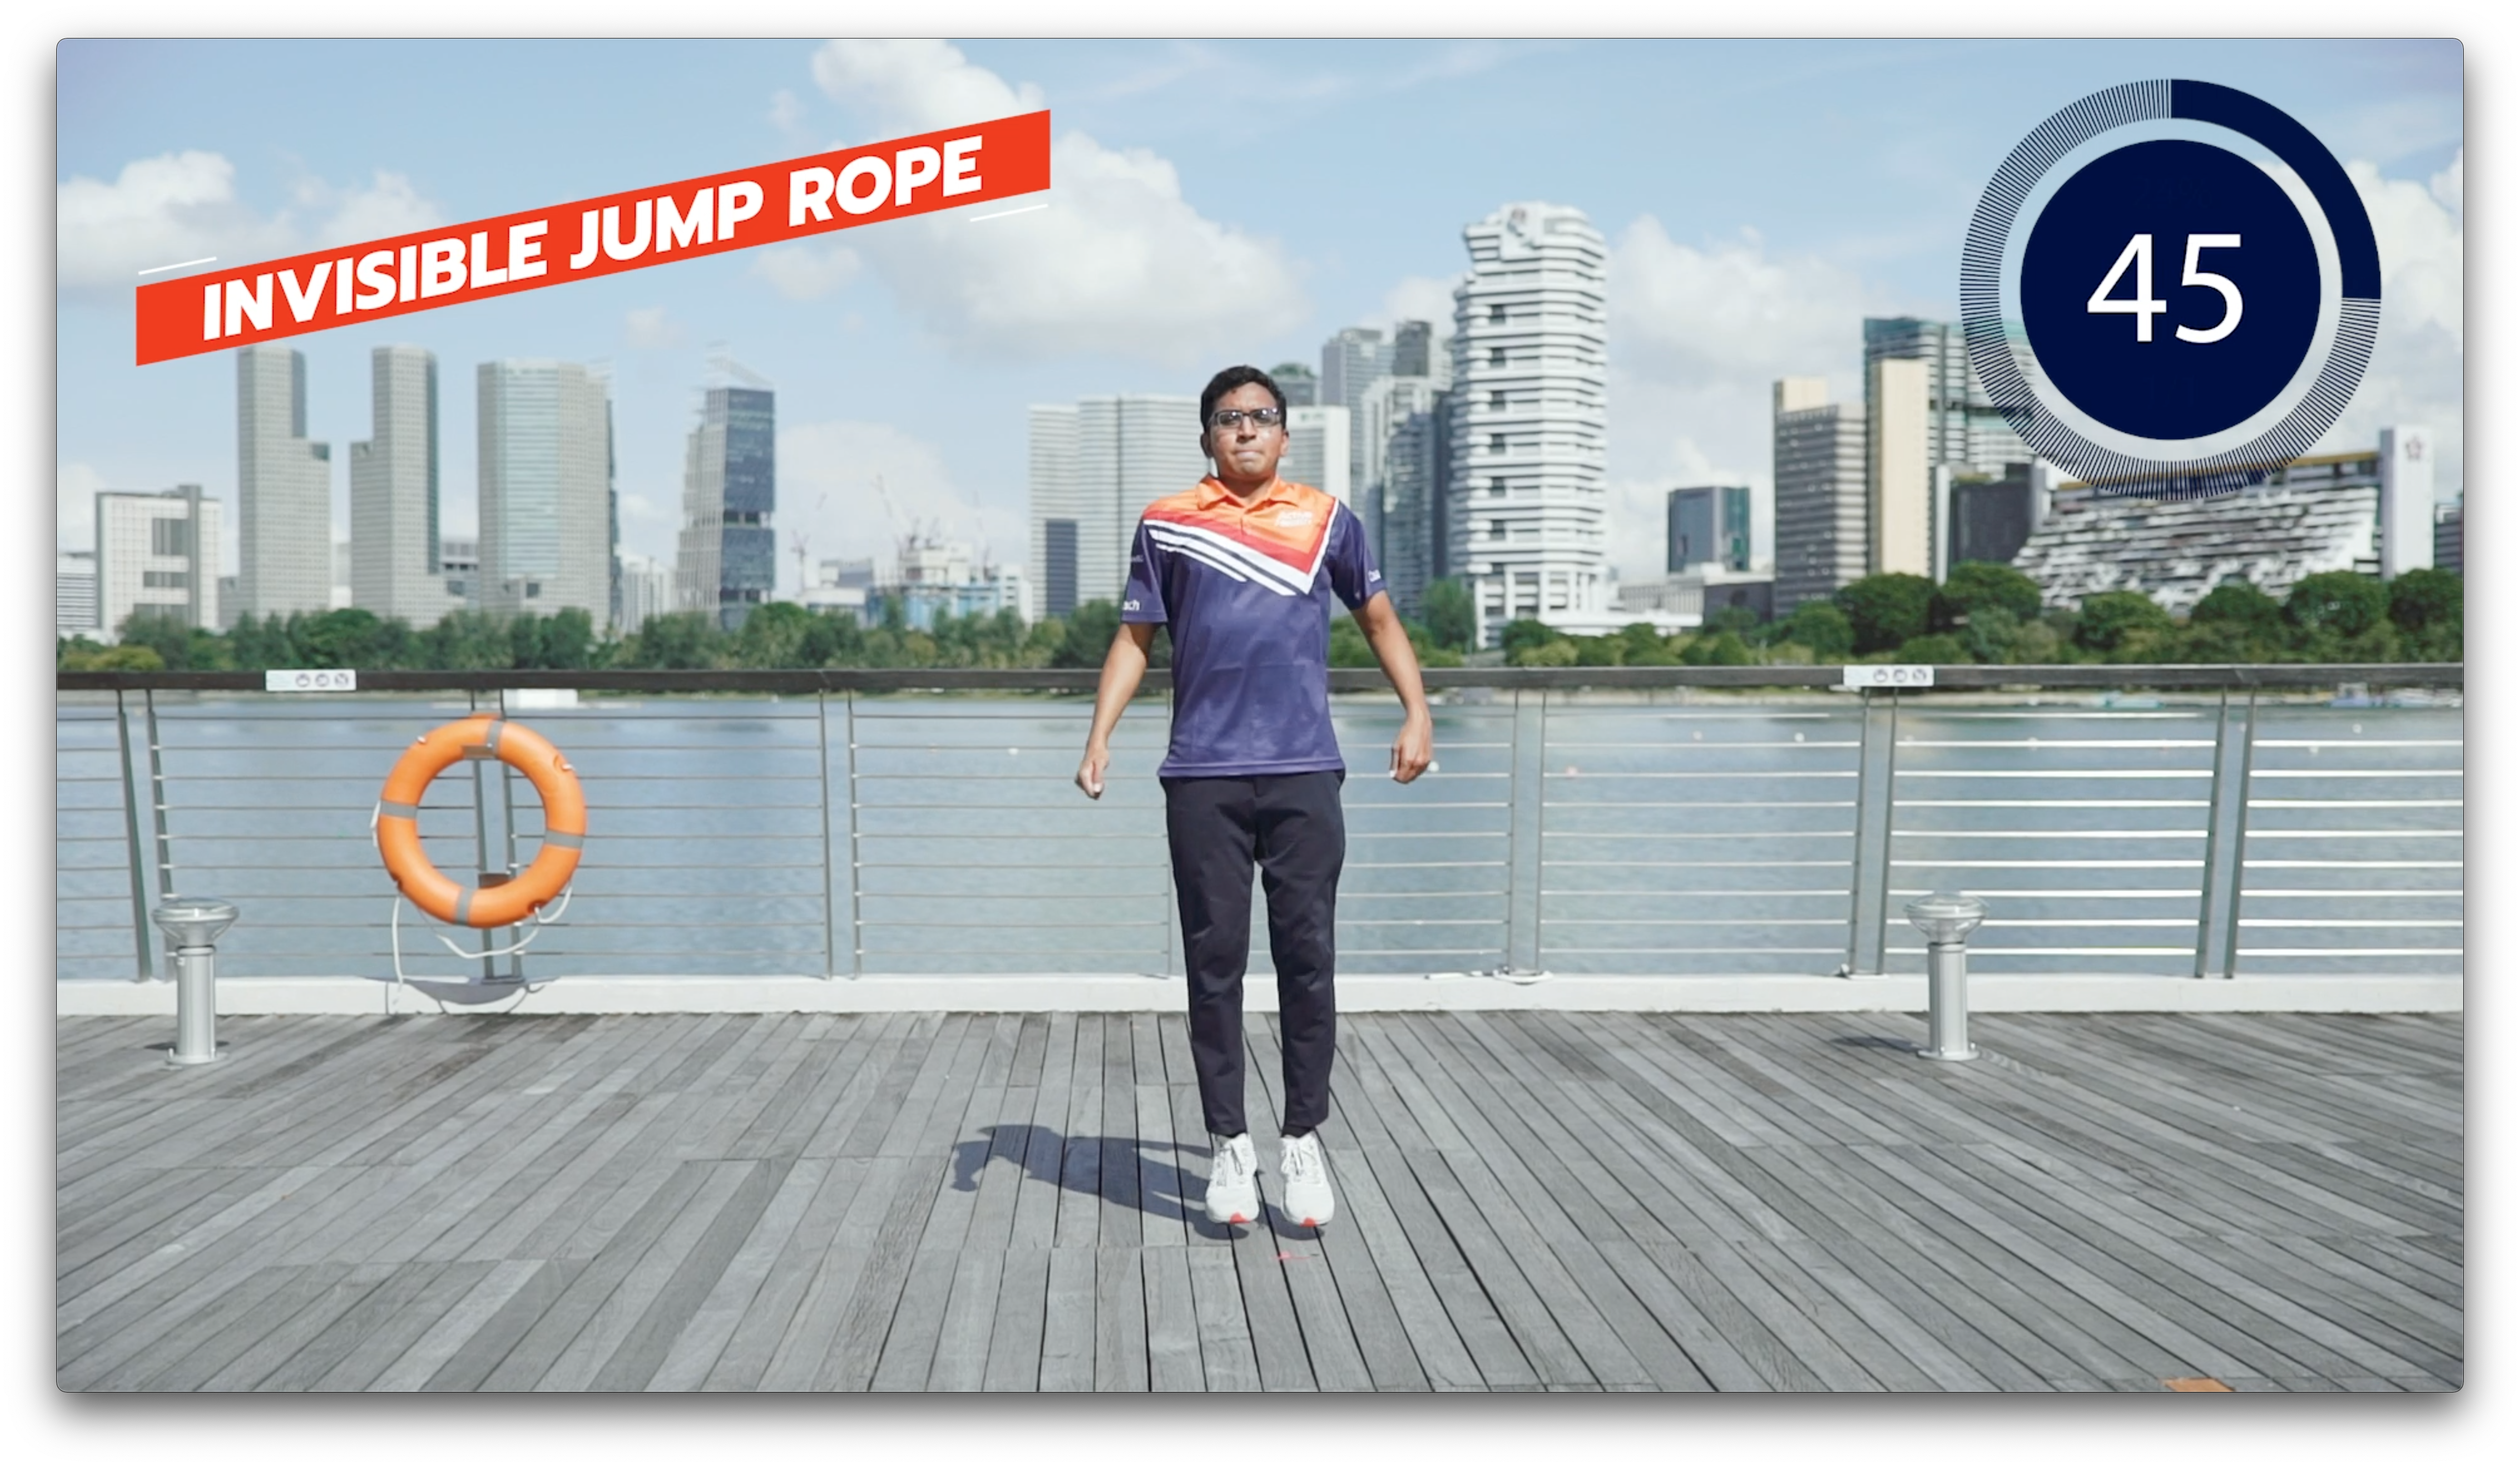 Invisble Jump Rope